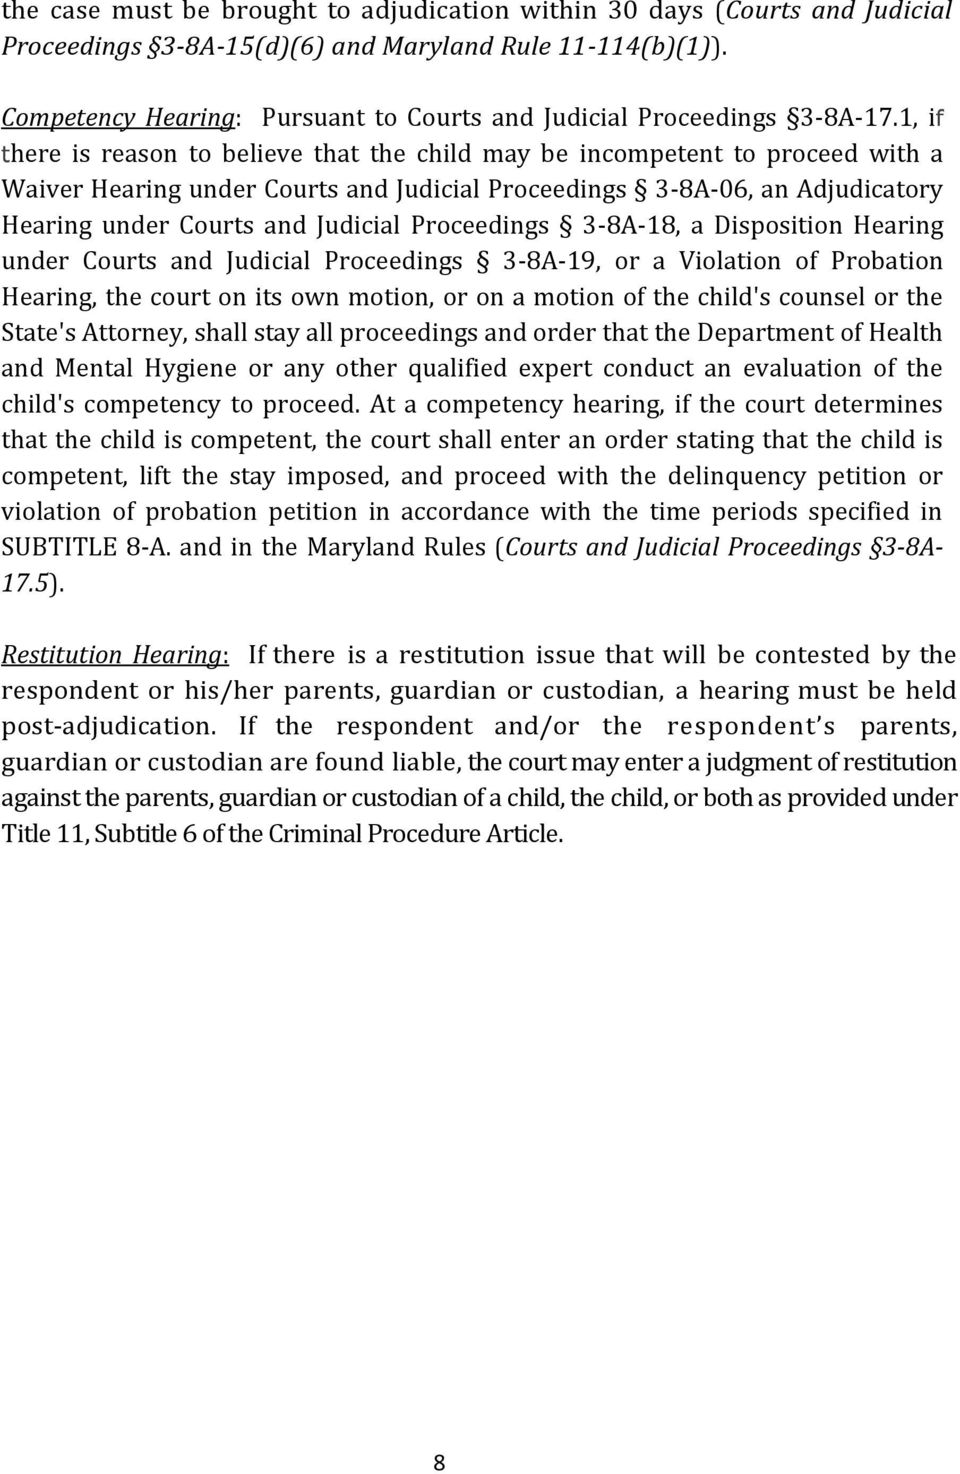 1, if there is reason to believe that the child may be incompetent to proceed with a Waiver Hearing under Courts and Judicial Proceedings 3-8A-06, an Adjudicatory Hearing under Courts and Judicial